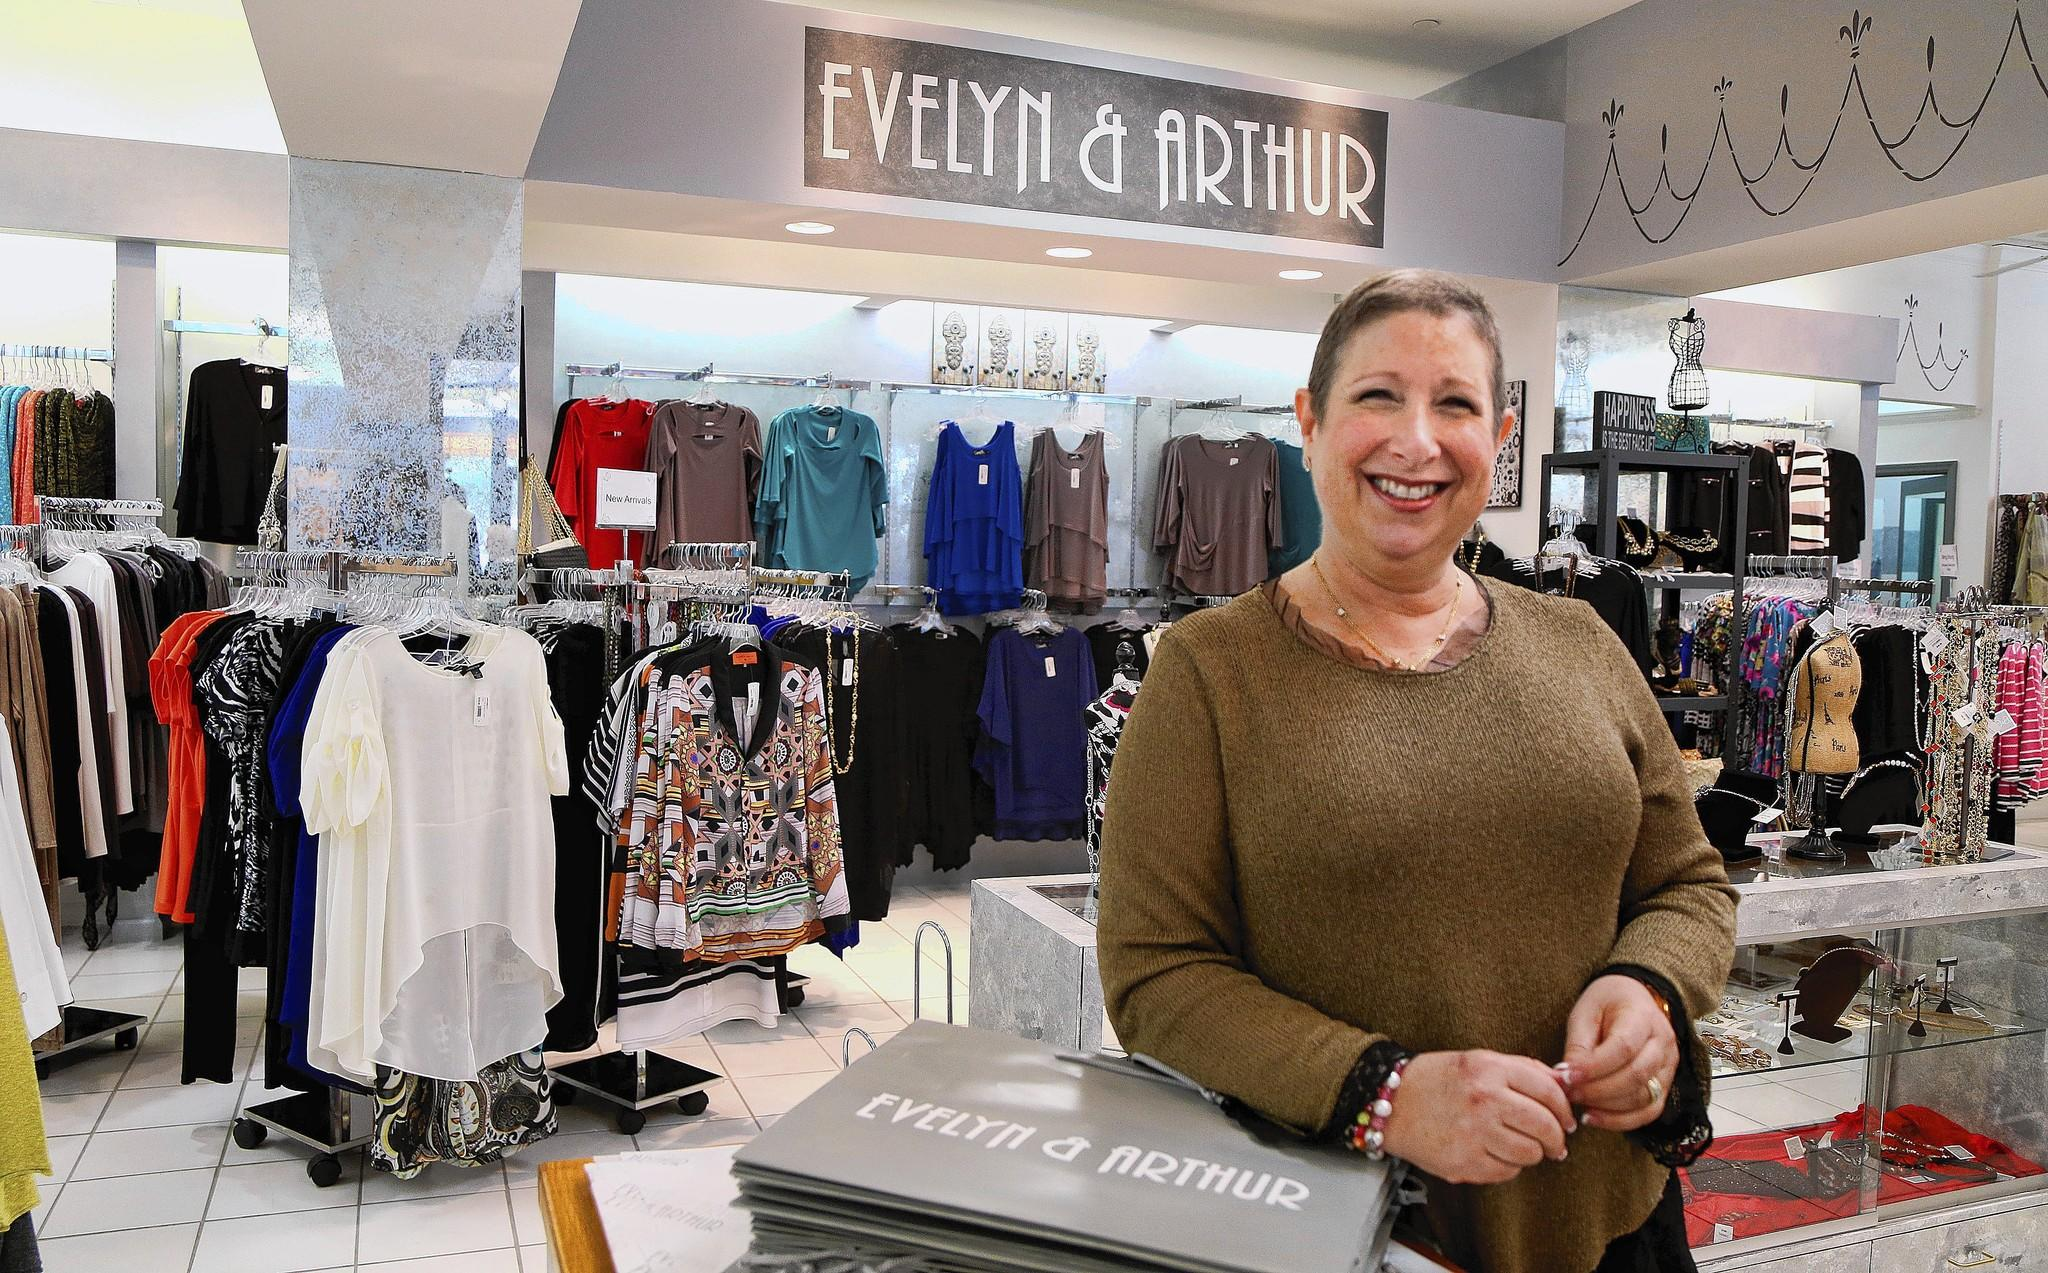 Evelyn's clothing store